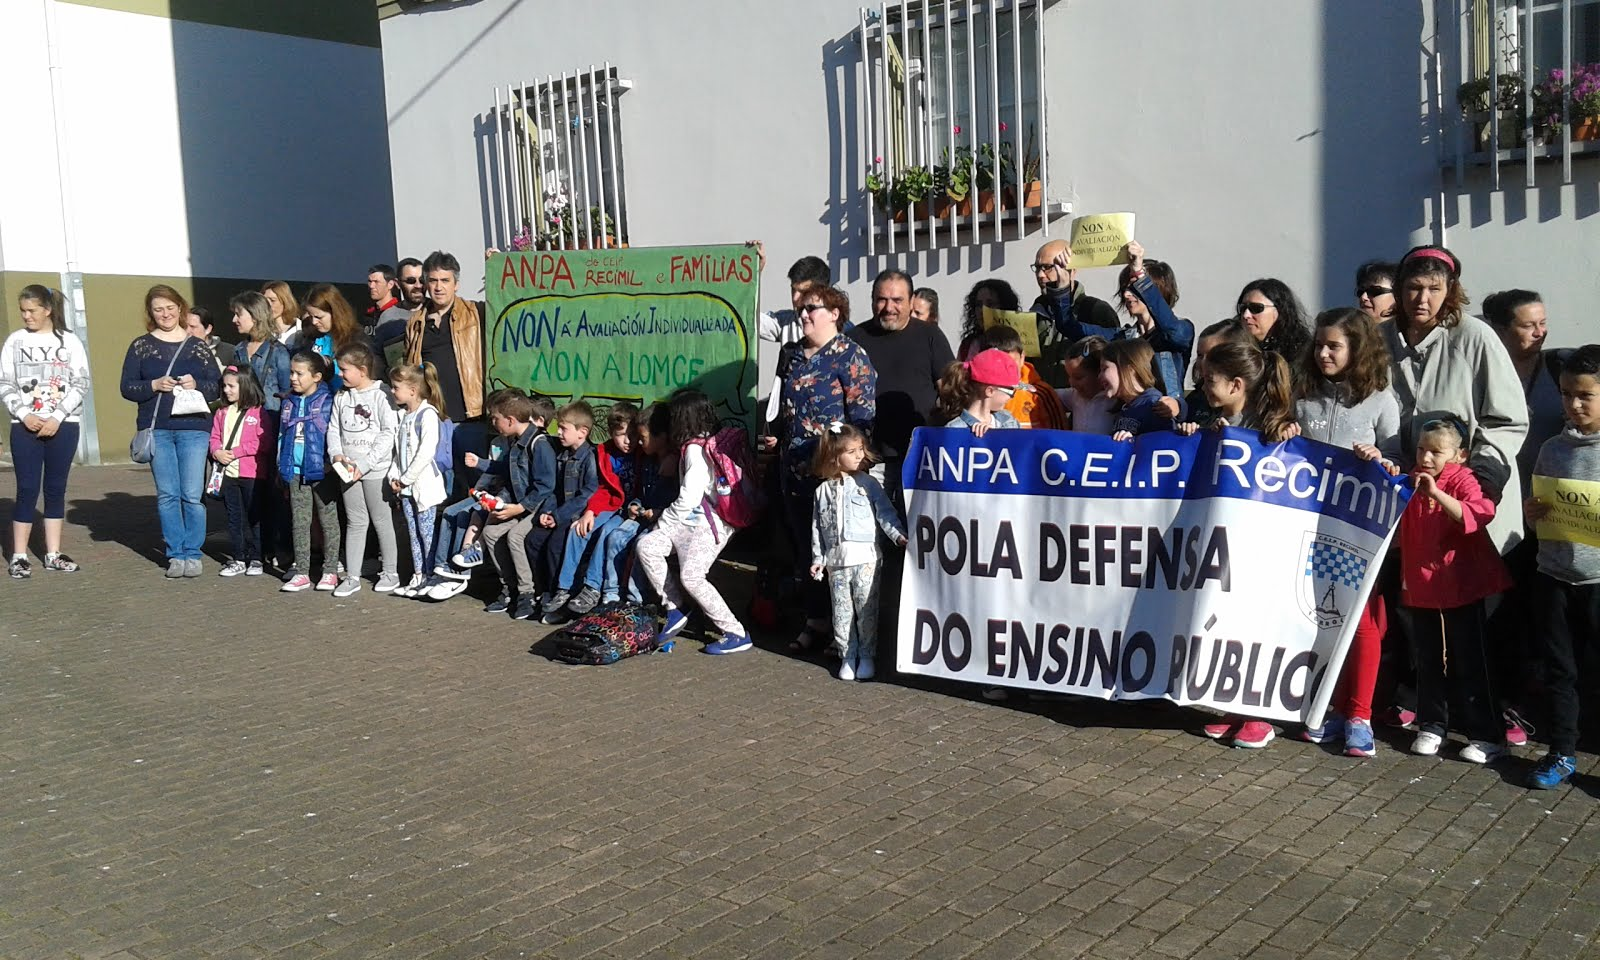 Defensa ensino público